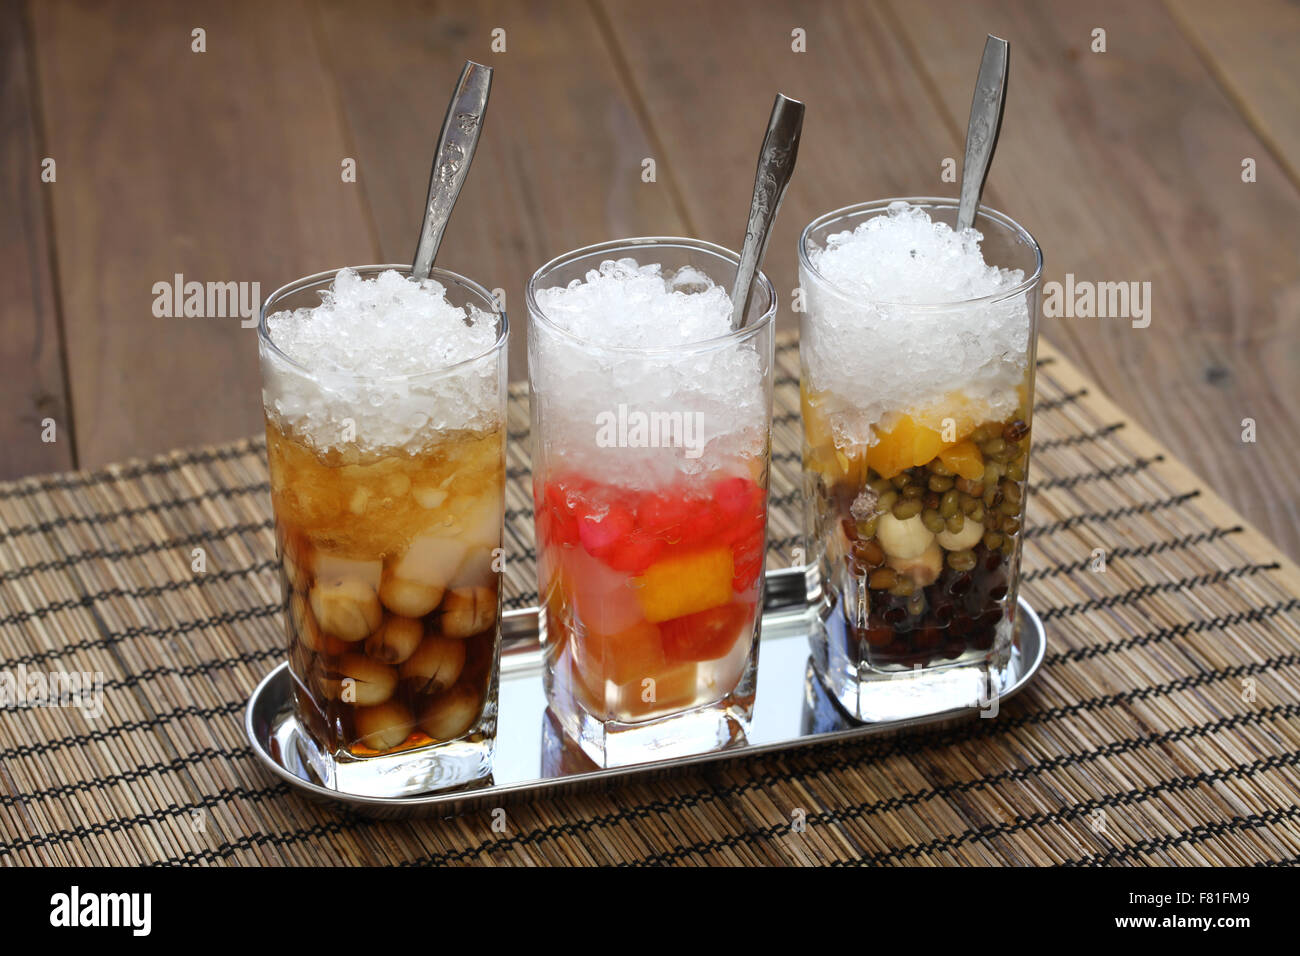 che is a vietnamese sweet dessert soup, usually served in a glass over ice and eaten with a spoon. - Stock Image